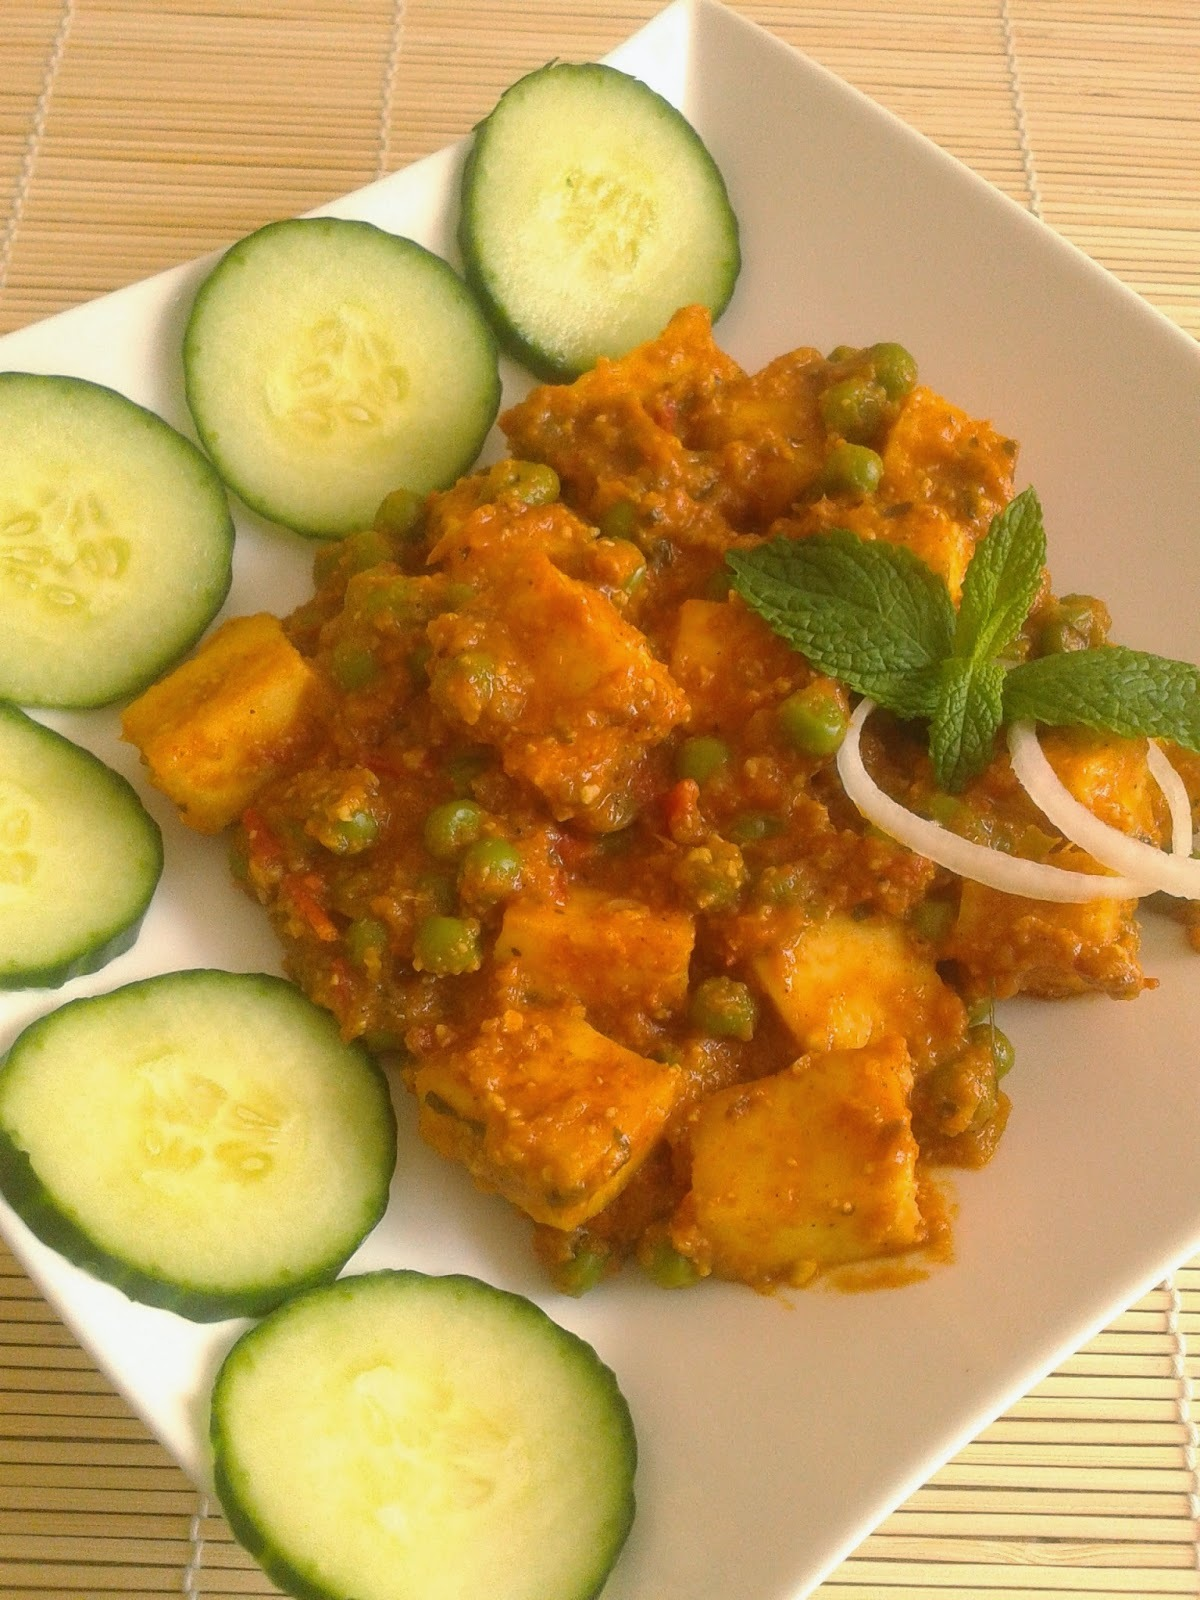 Recipe of Matar Paneer | How to Make Matar Paneer